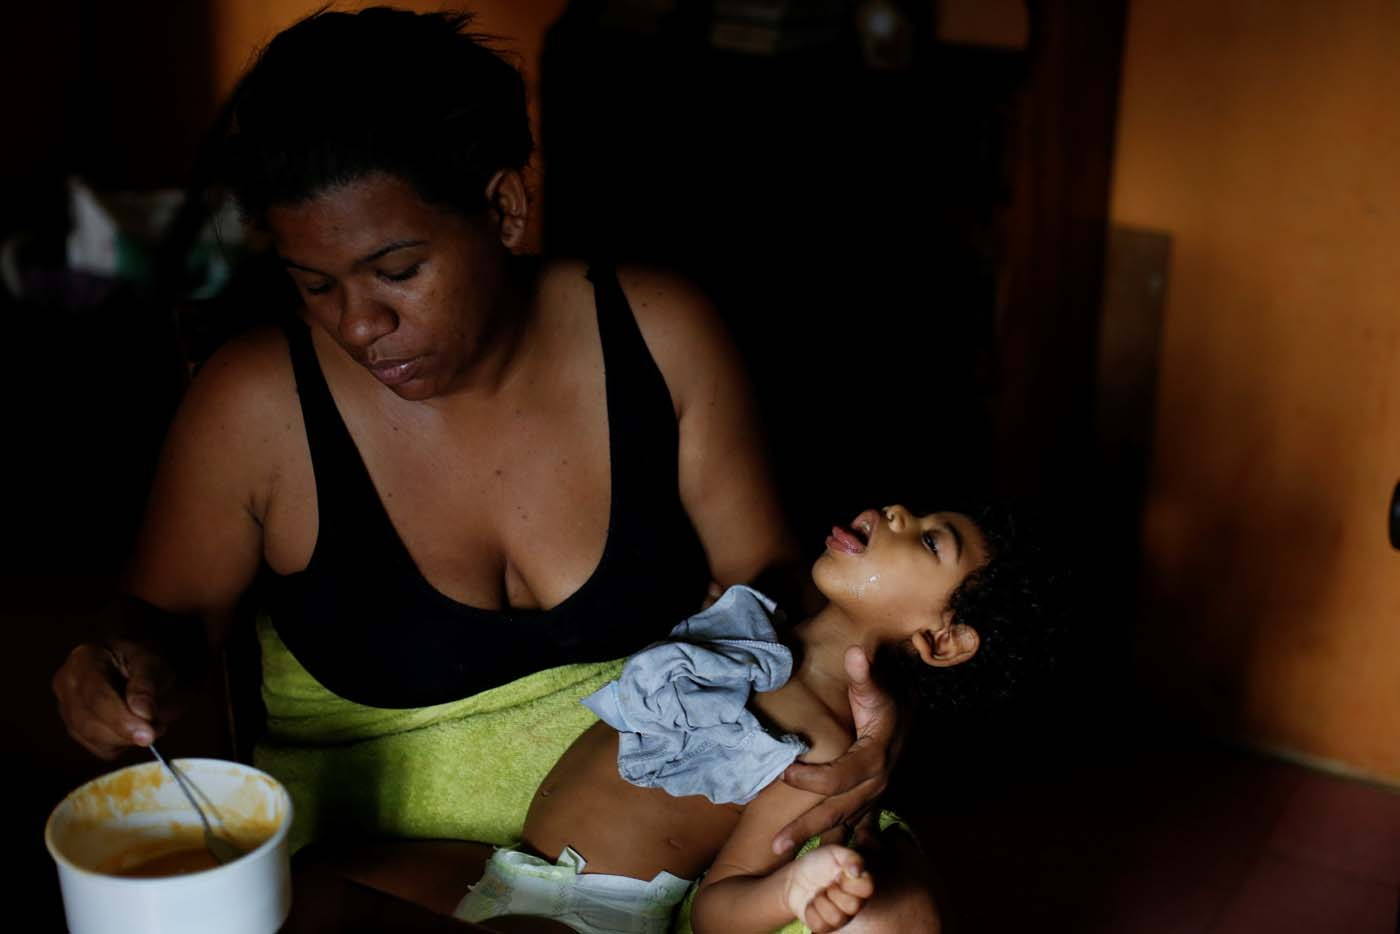 "Tatiana Rocha feeds her son Kaleth Heredia, 2, neurological patient being treated with anticonvulsants, at their house in Caracas, Venezuela February 3, 2017. REUTERS/Carlos Garcia Rawlins    SEARCH ""EPILEPSY CARACAS"" FOR THIS STORY. SEARCH ""WIDER IMAGE"" FOR ALL STORIES."